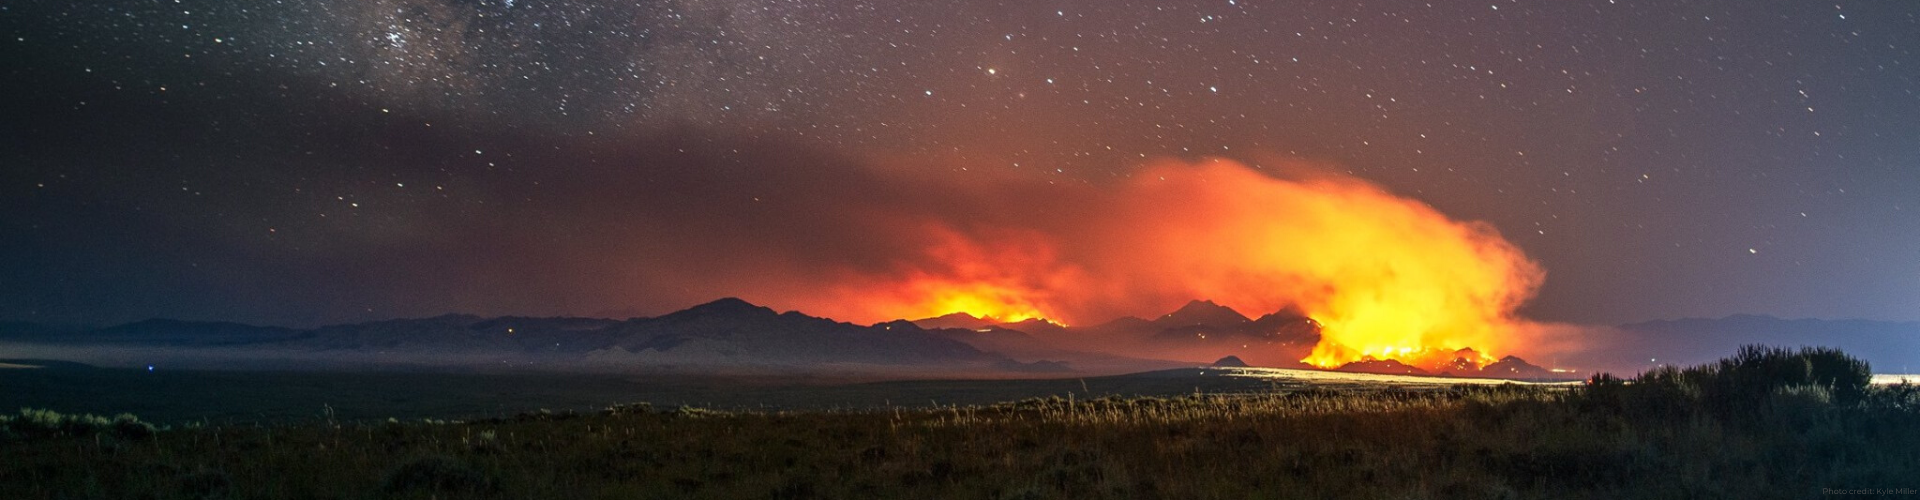 Timelapse photo of prescribed fire at night by Kyle Miller.